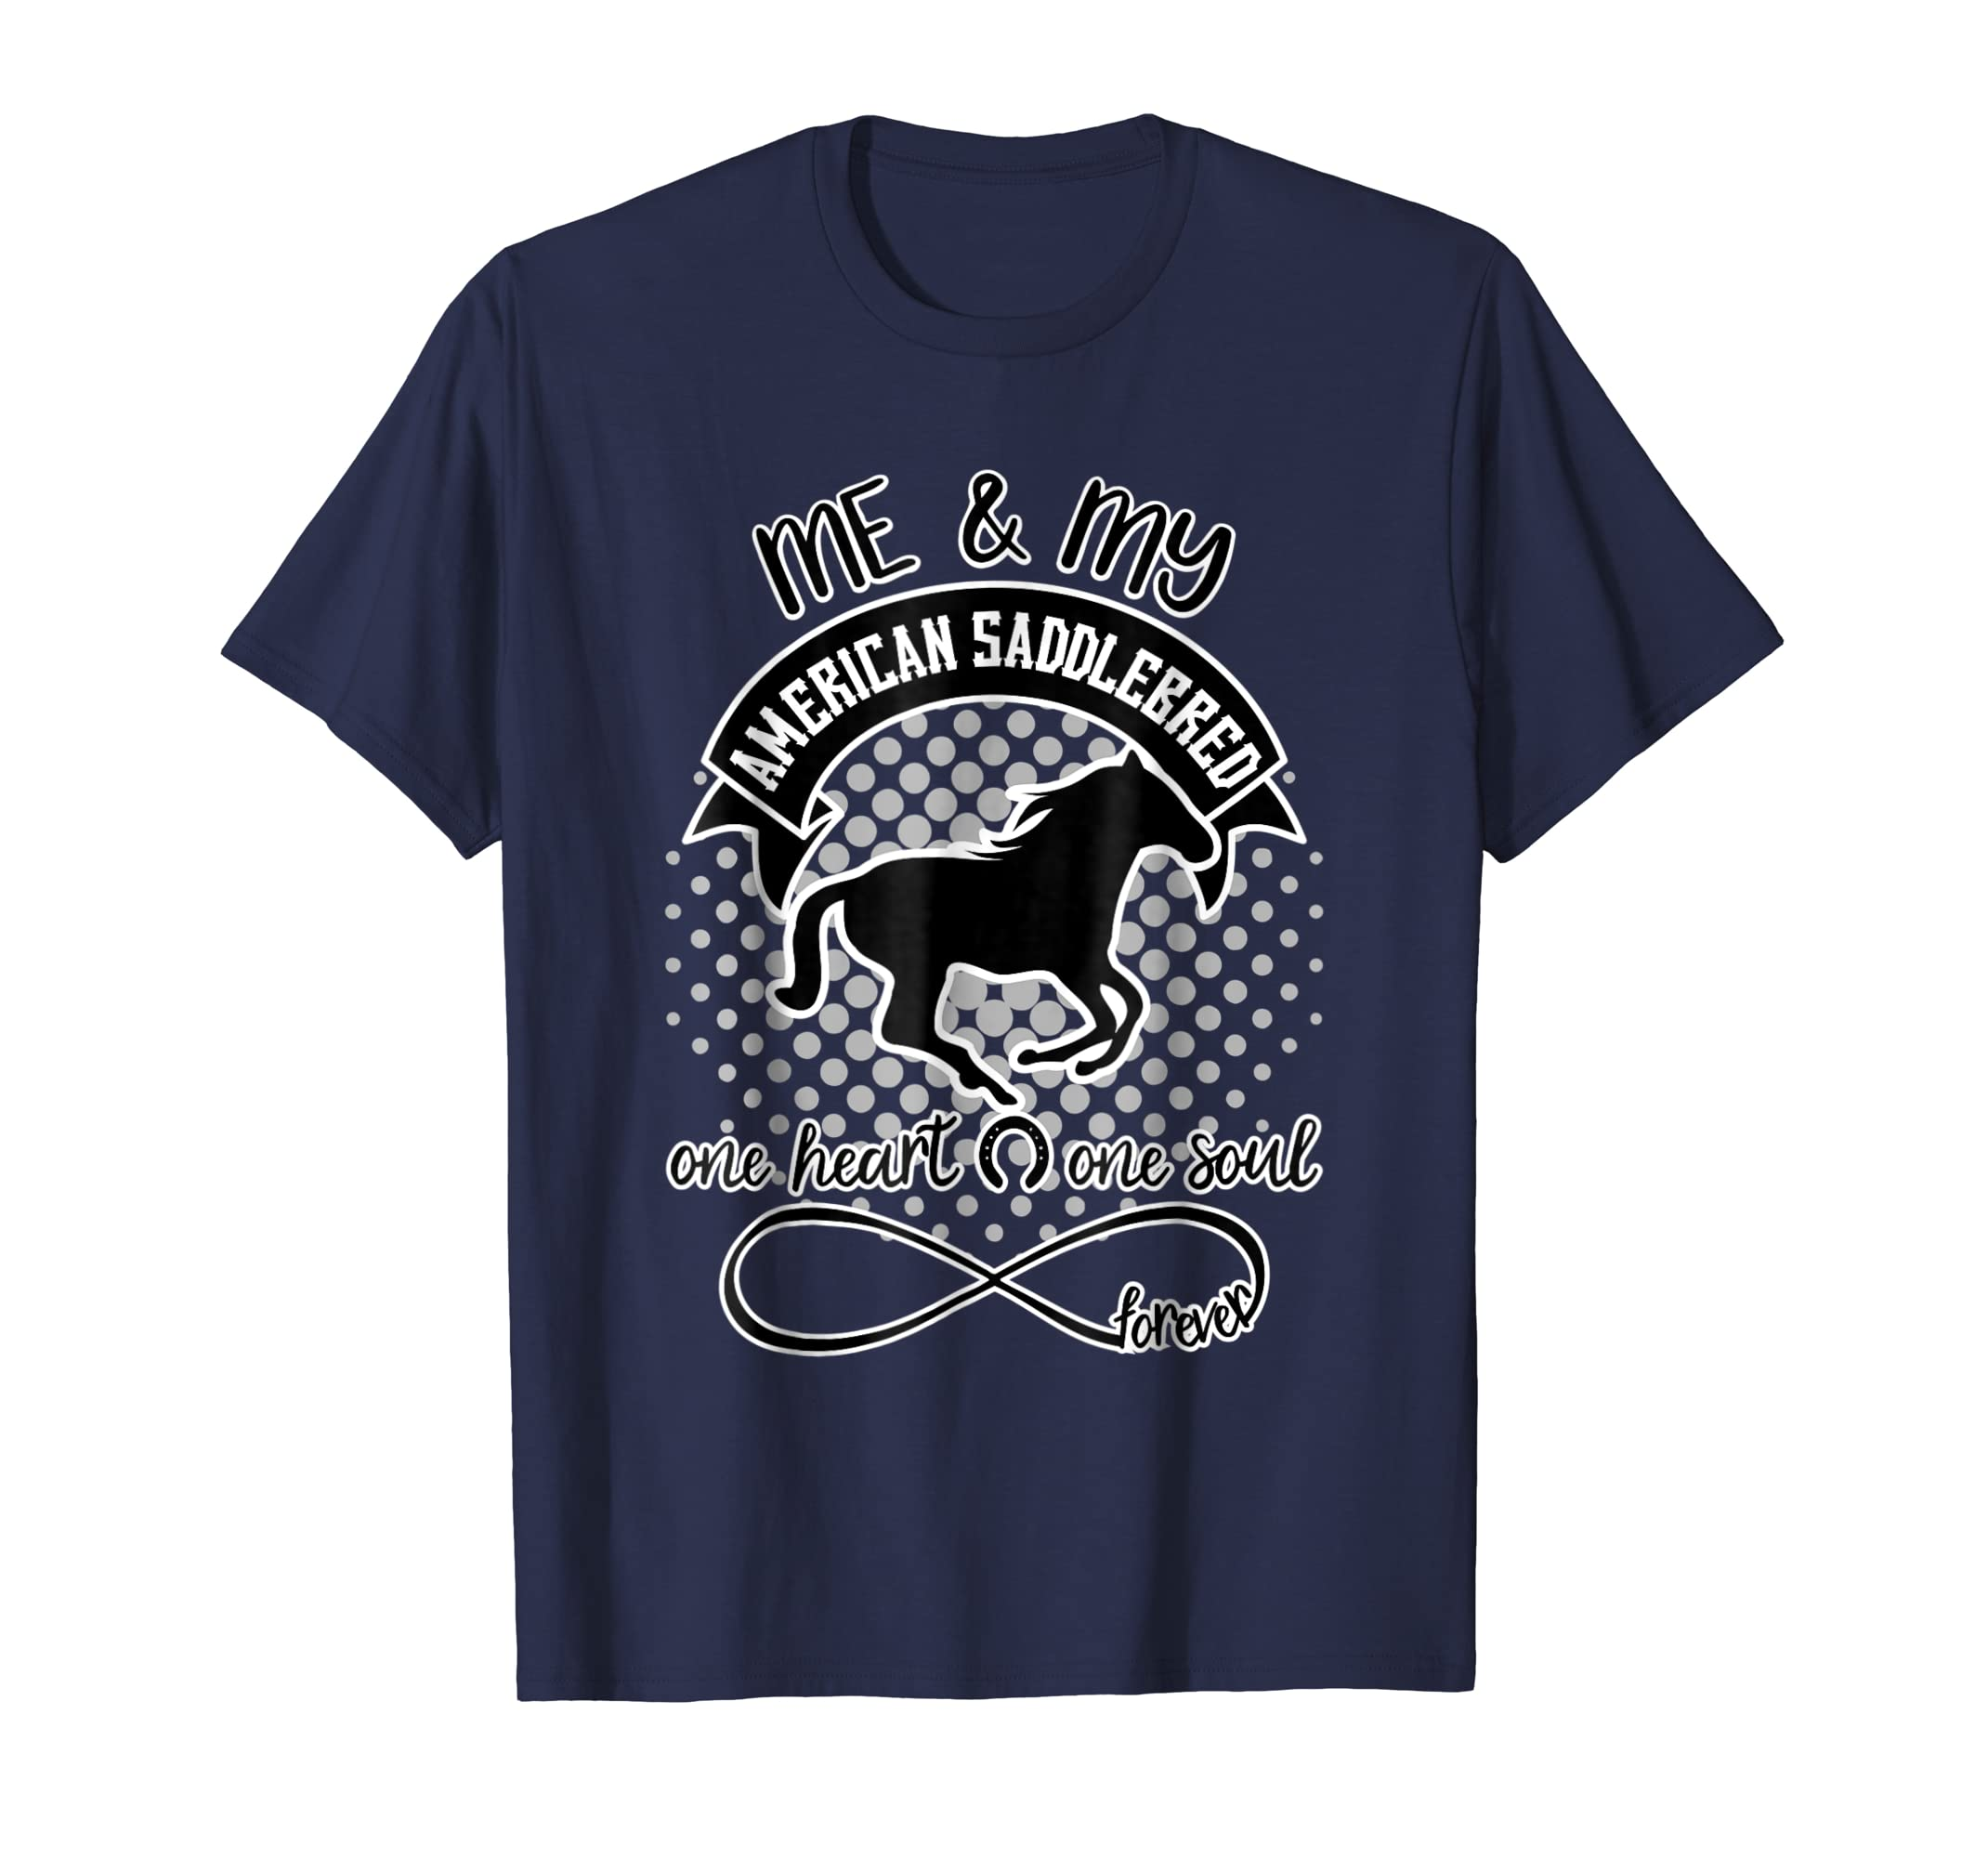 1153bfa1 Amazon.com: American Saddlebred T-Shirt - Horse Breeds Cute Quotes: Clothing